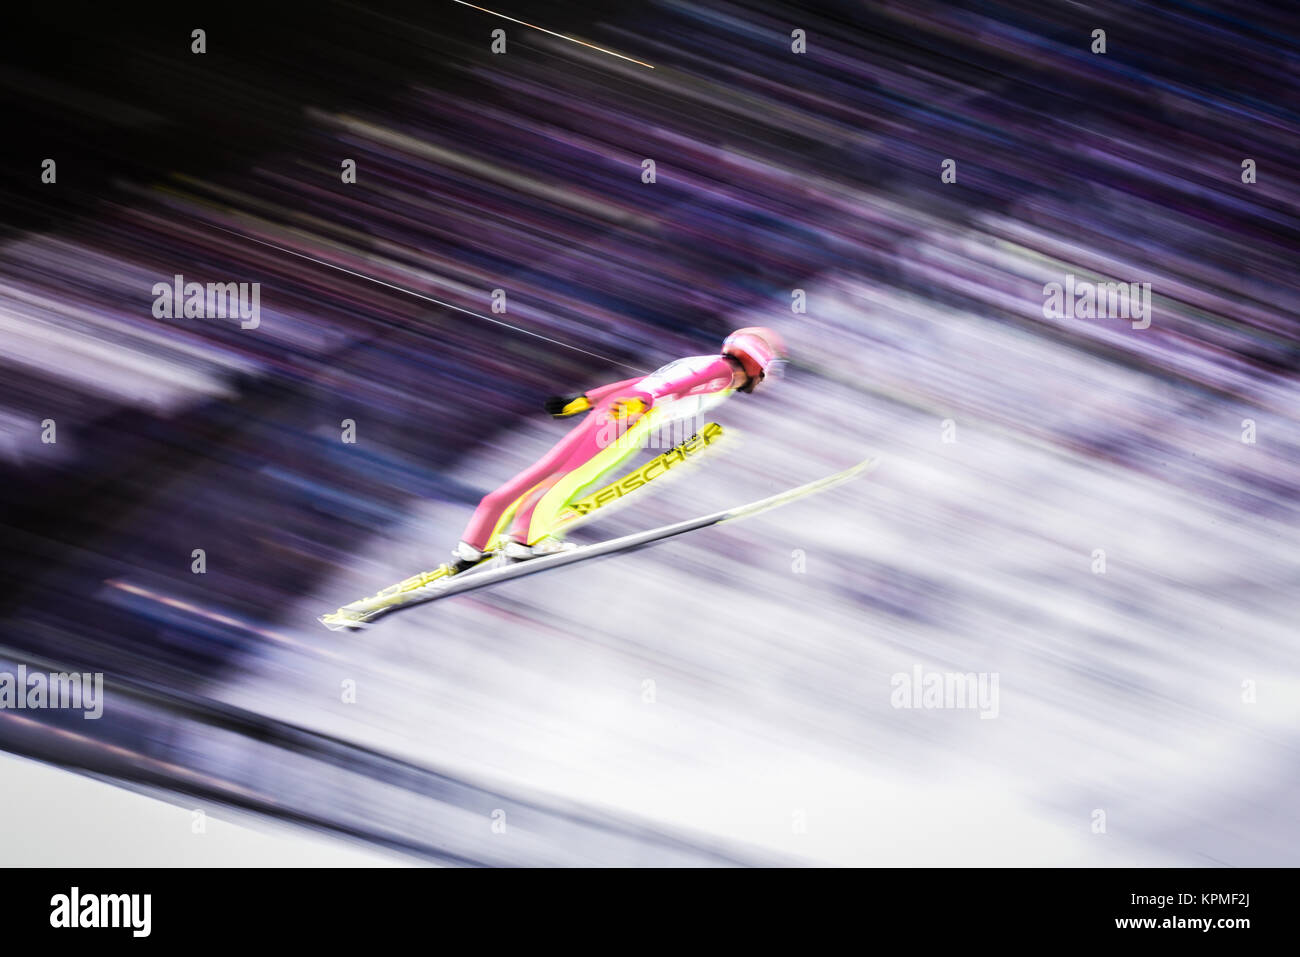 Nordic combined ski jumper flying through the air during practice at the 2017 FIS World Nordic Ski Championships, - Stock Image